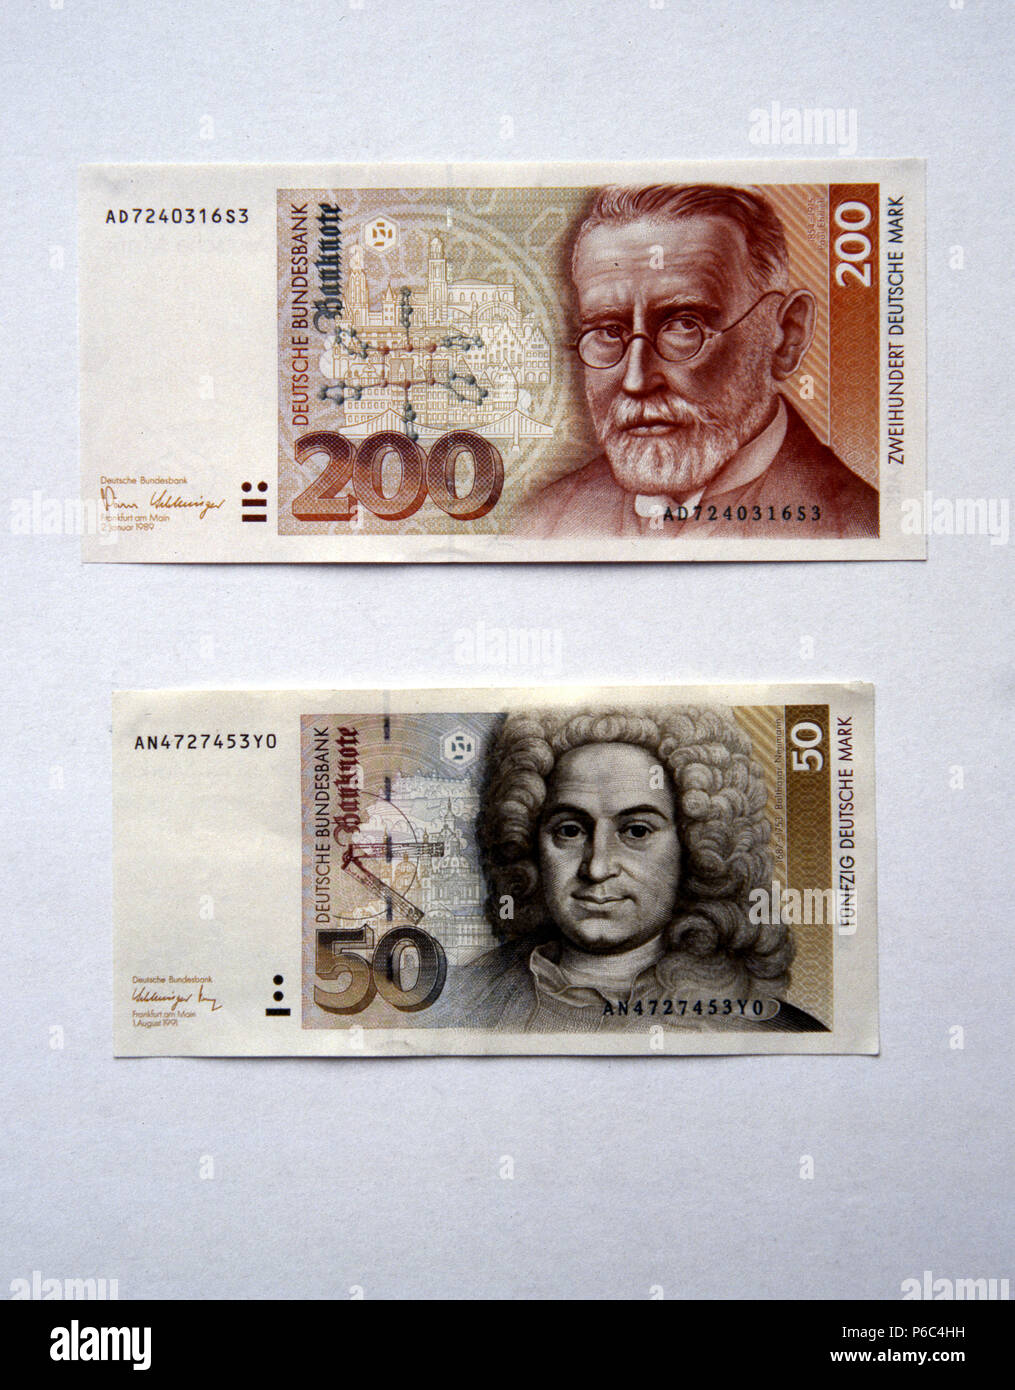 Berlin, Germany - Banknotes worth 50 DM and 200 DM - Stock Image